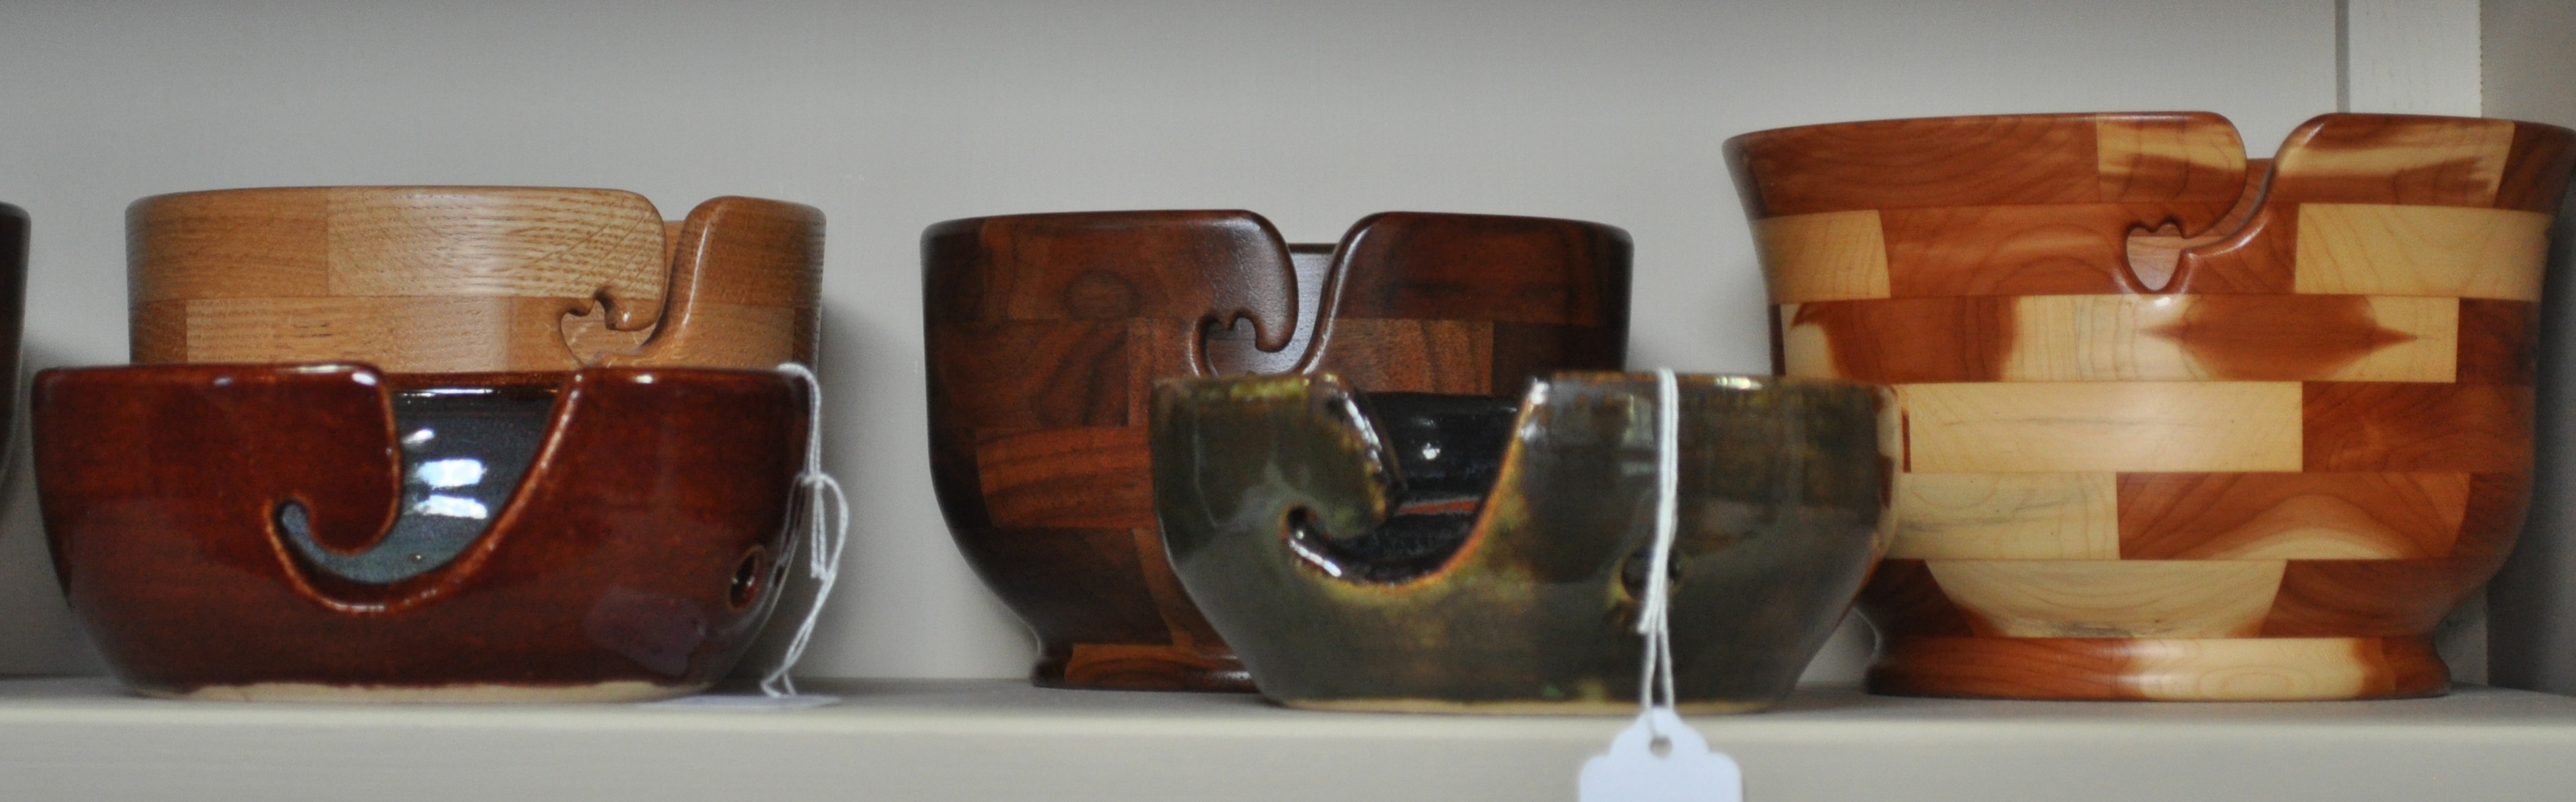 Wood or Ceramic Yarn Bowls